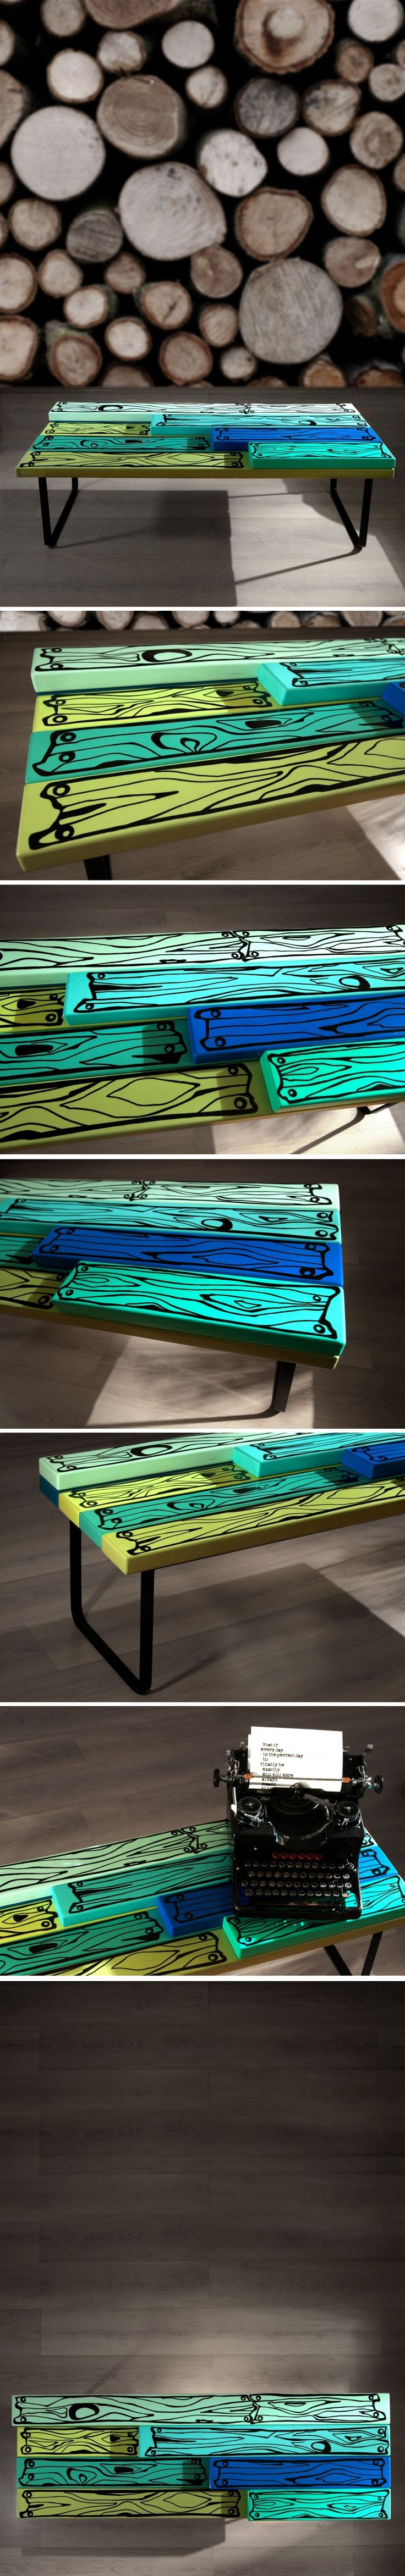 """M.M Table"" is a creative piece of furniture that portrays a beautiful splash of color, which explores the relationships between crafting and technology. The top is painted with acrylic colors in different shades of green and azure.  ""M&M Table"" este o masuta de cafea cu un design unic ce exploreaza relatia dintre arta si tehnologie. Blatul este pictat manual in culori acrilice,nuante de verde si albastru."